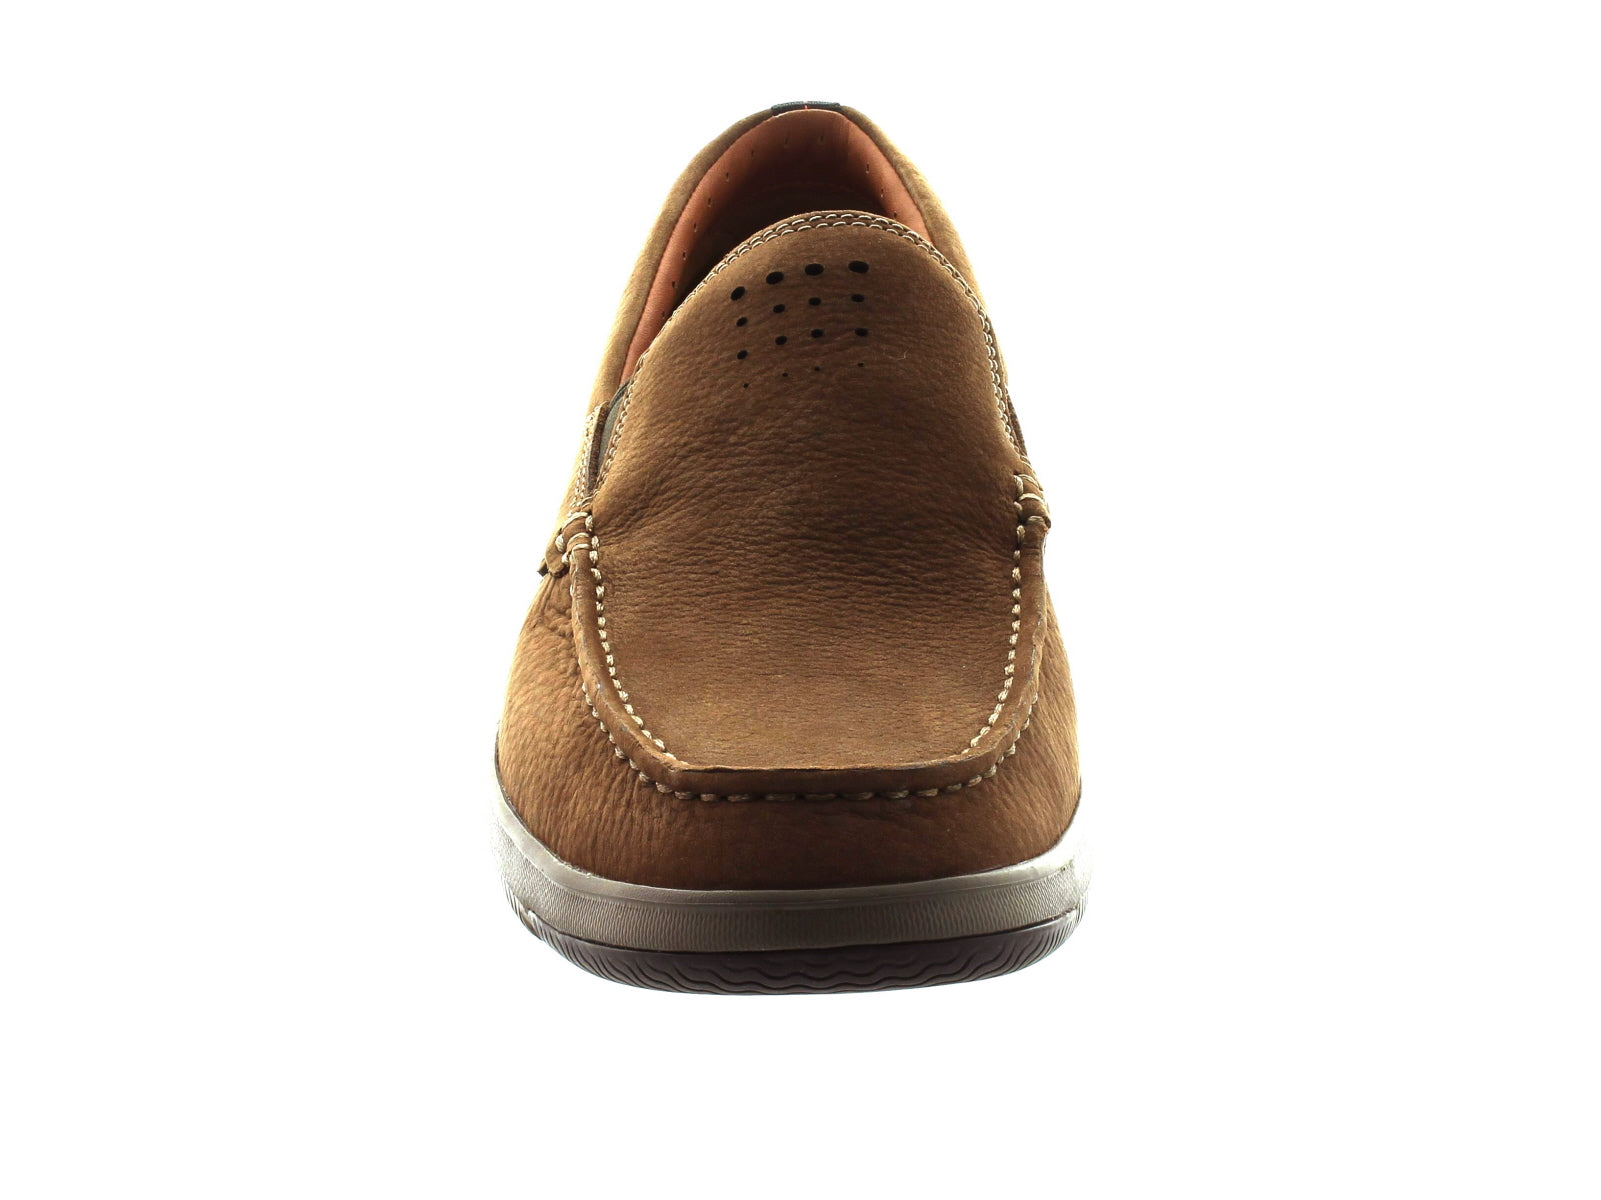 Clarks Ormand Sail in light brown front view